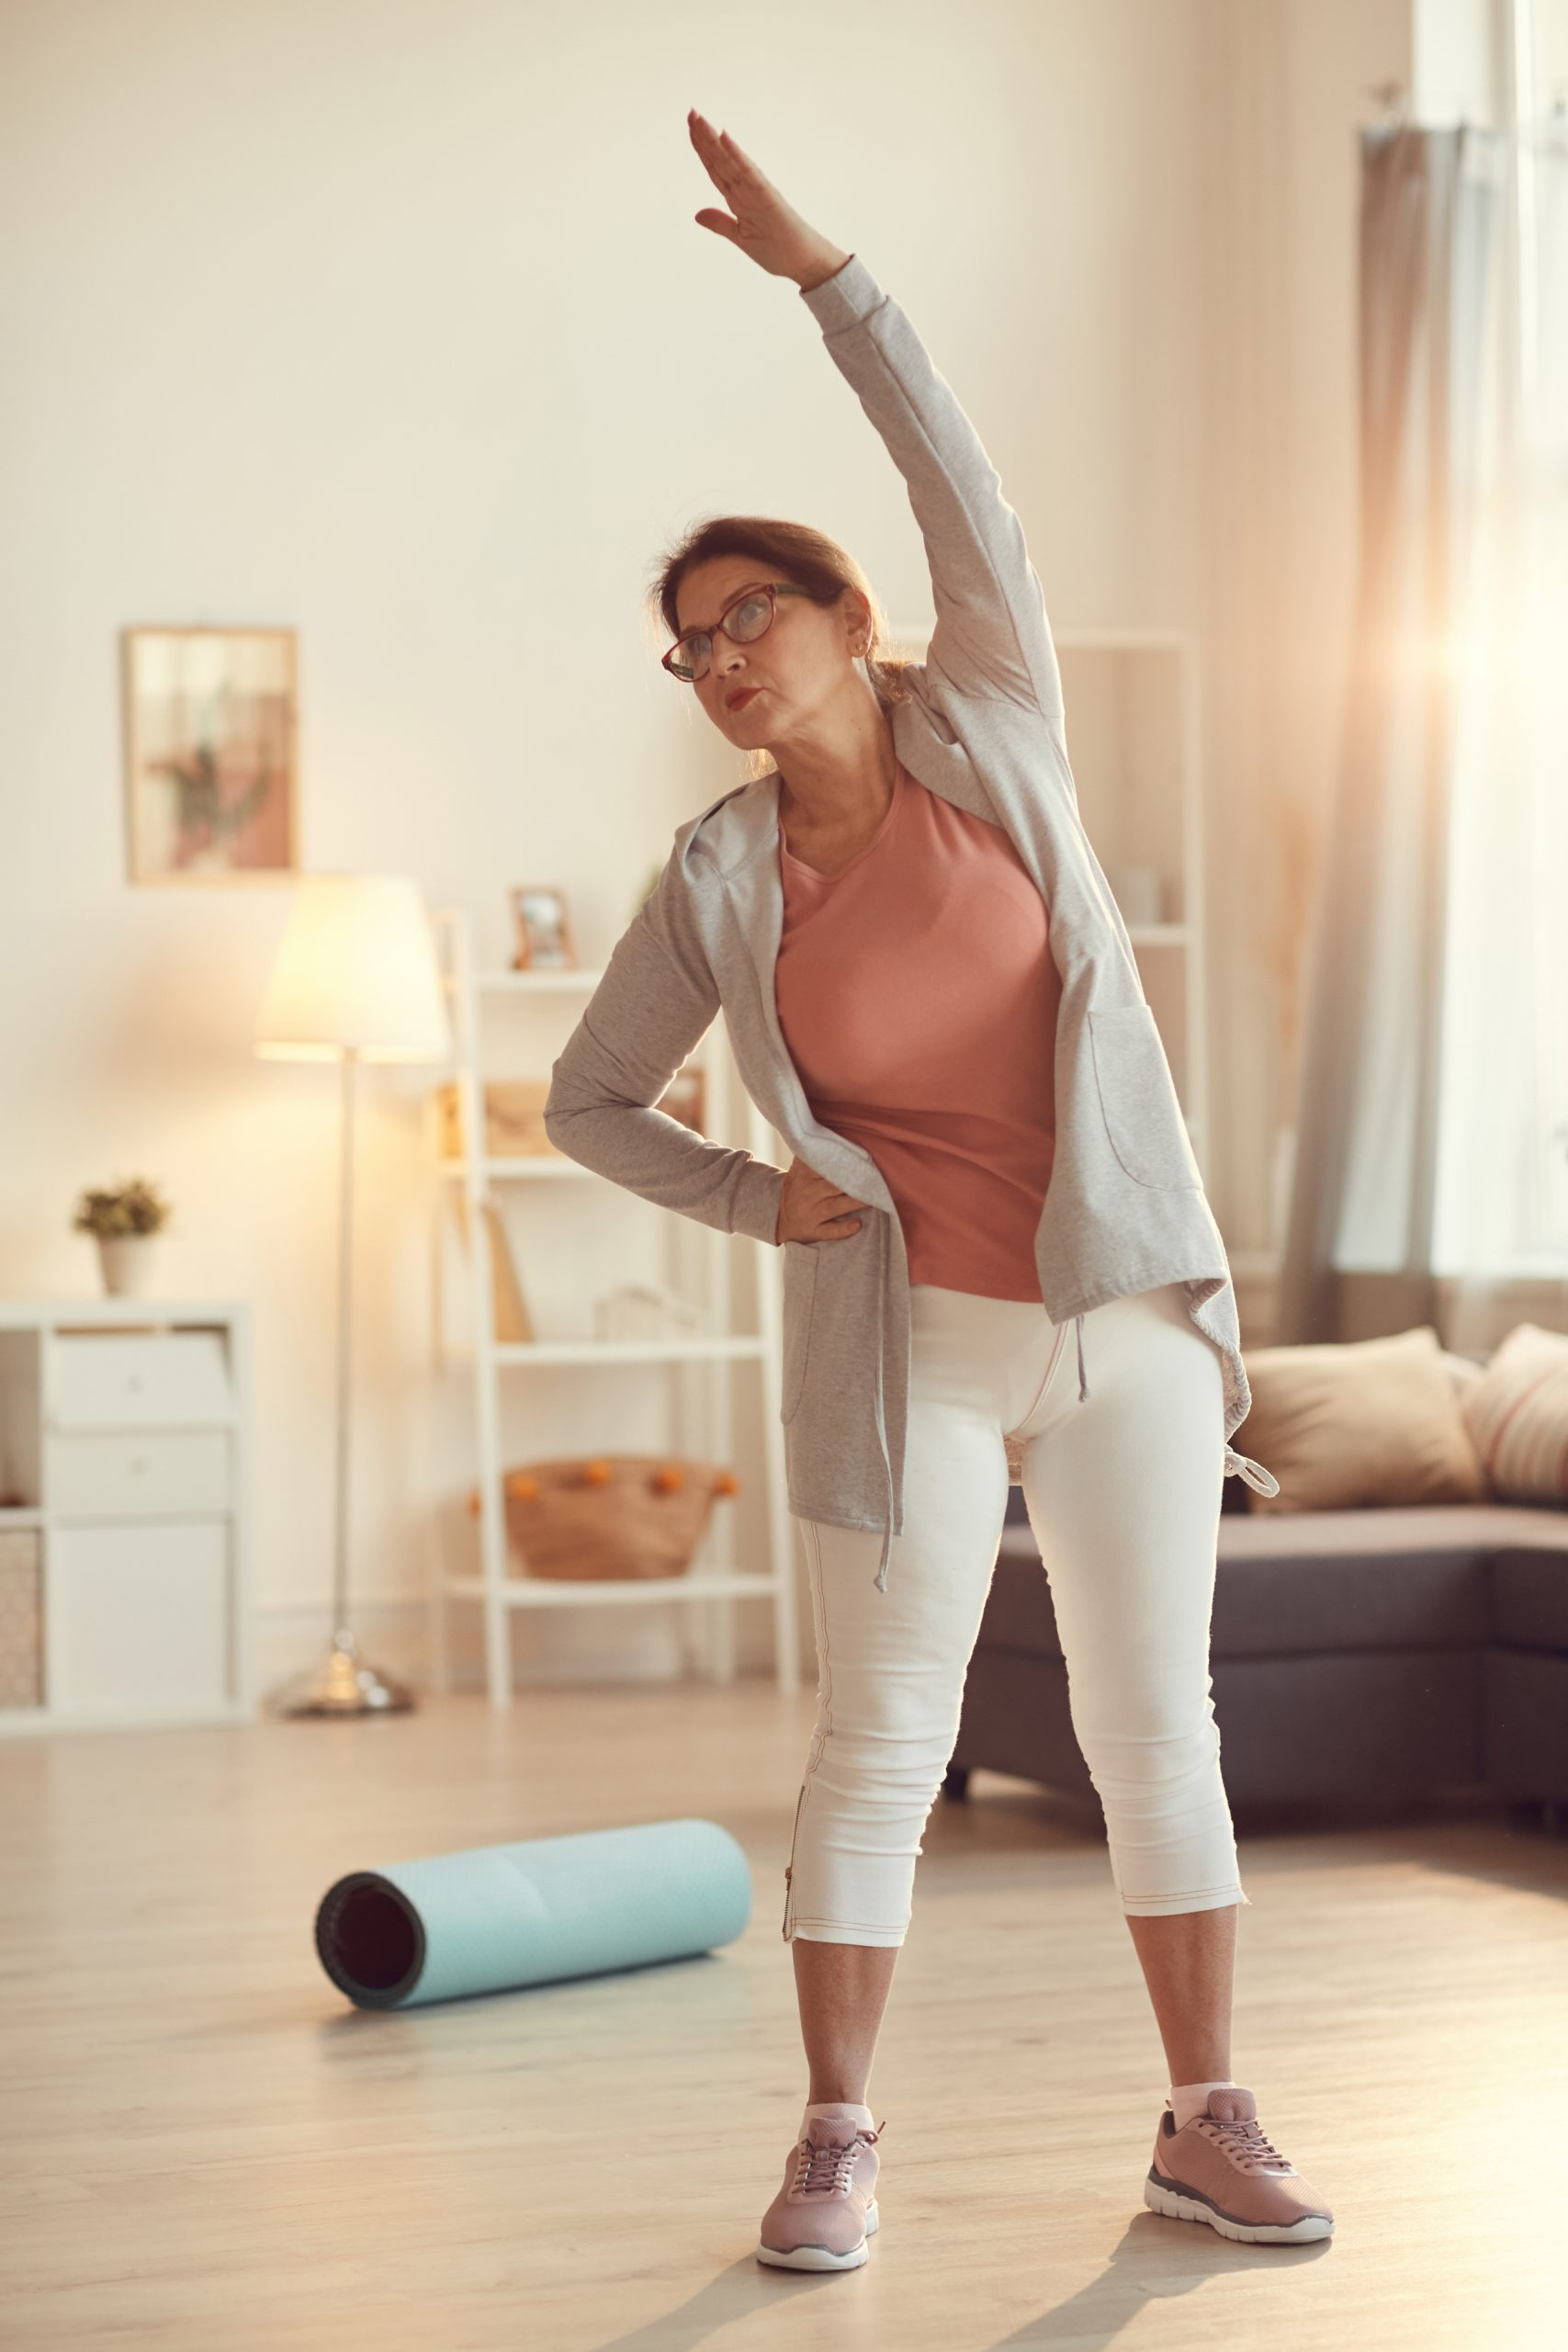 Serious purposeful senior woman in leggings standing in living room and doing side bend exercise alone